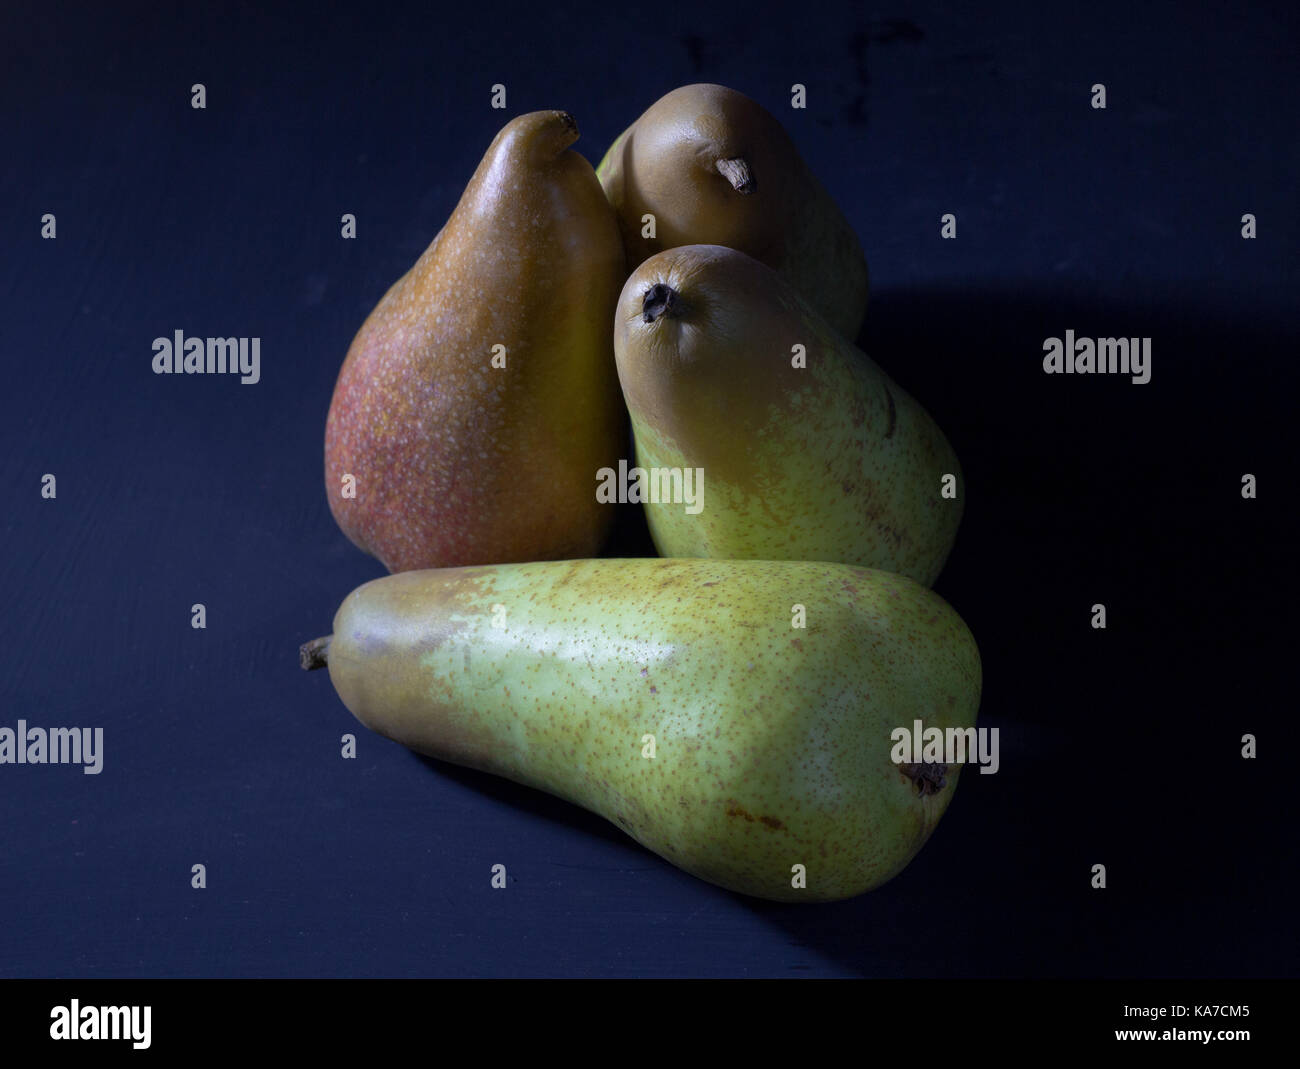 Pear fruit background with four fresh organic pears as unusual still life on dark blue background - Stock Image